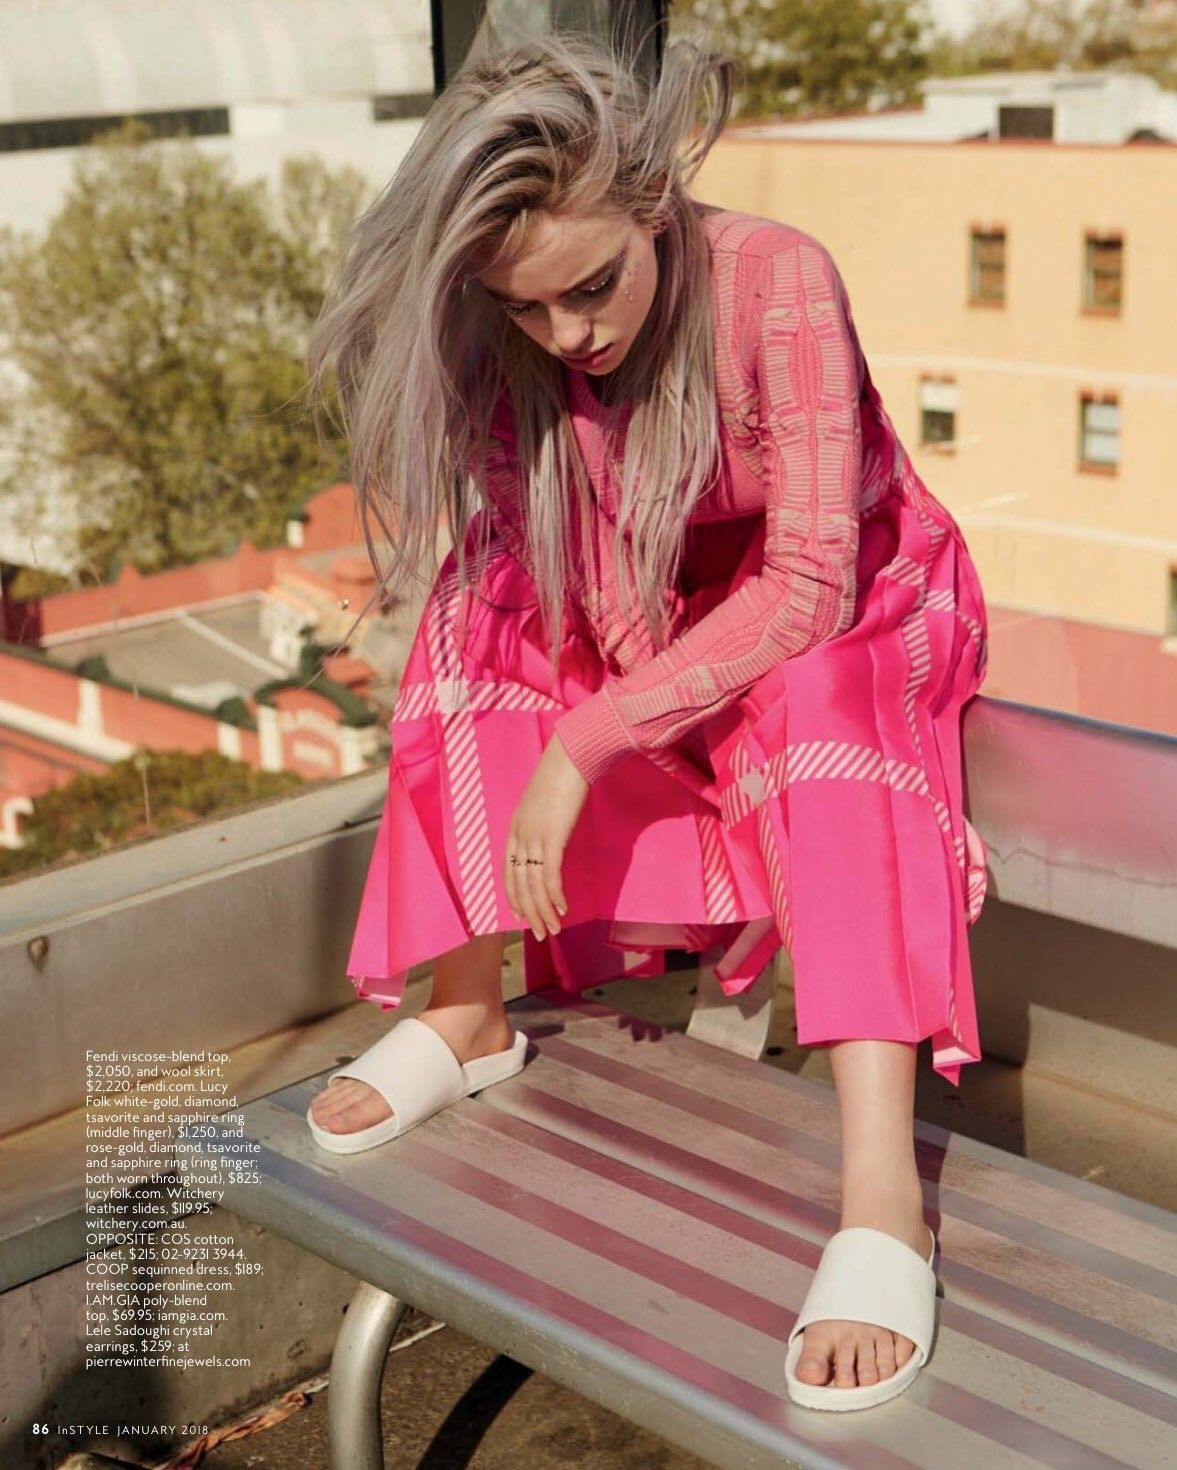 Pin by hann on bil (With images) | Billie eilish, Billie, Instyle ...